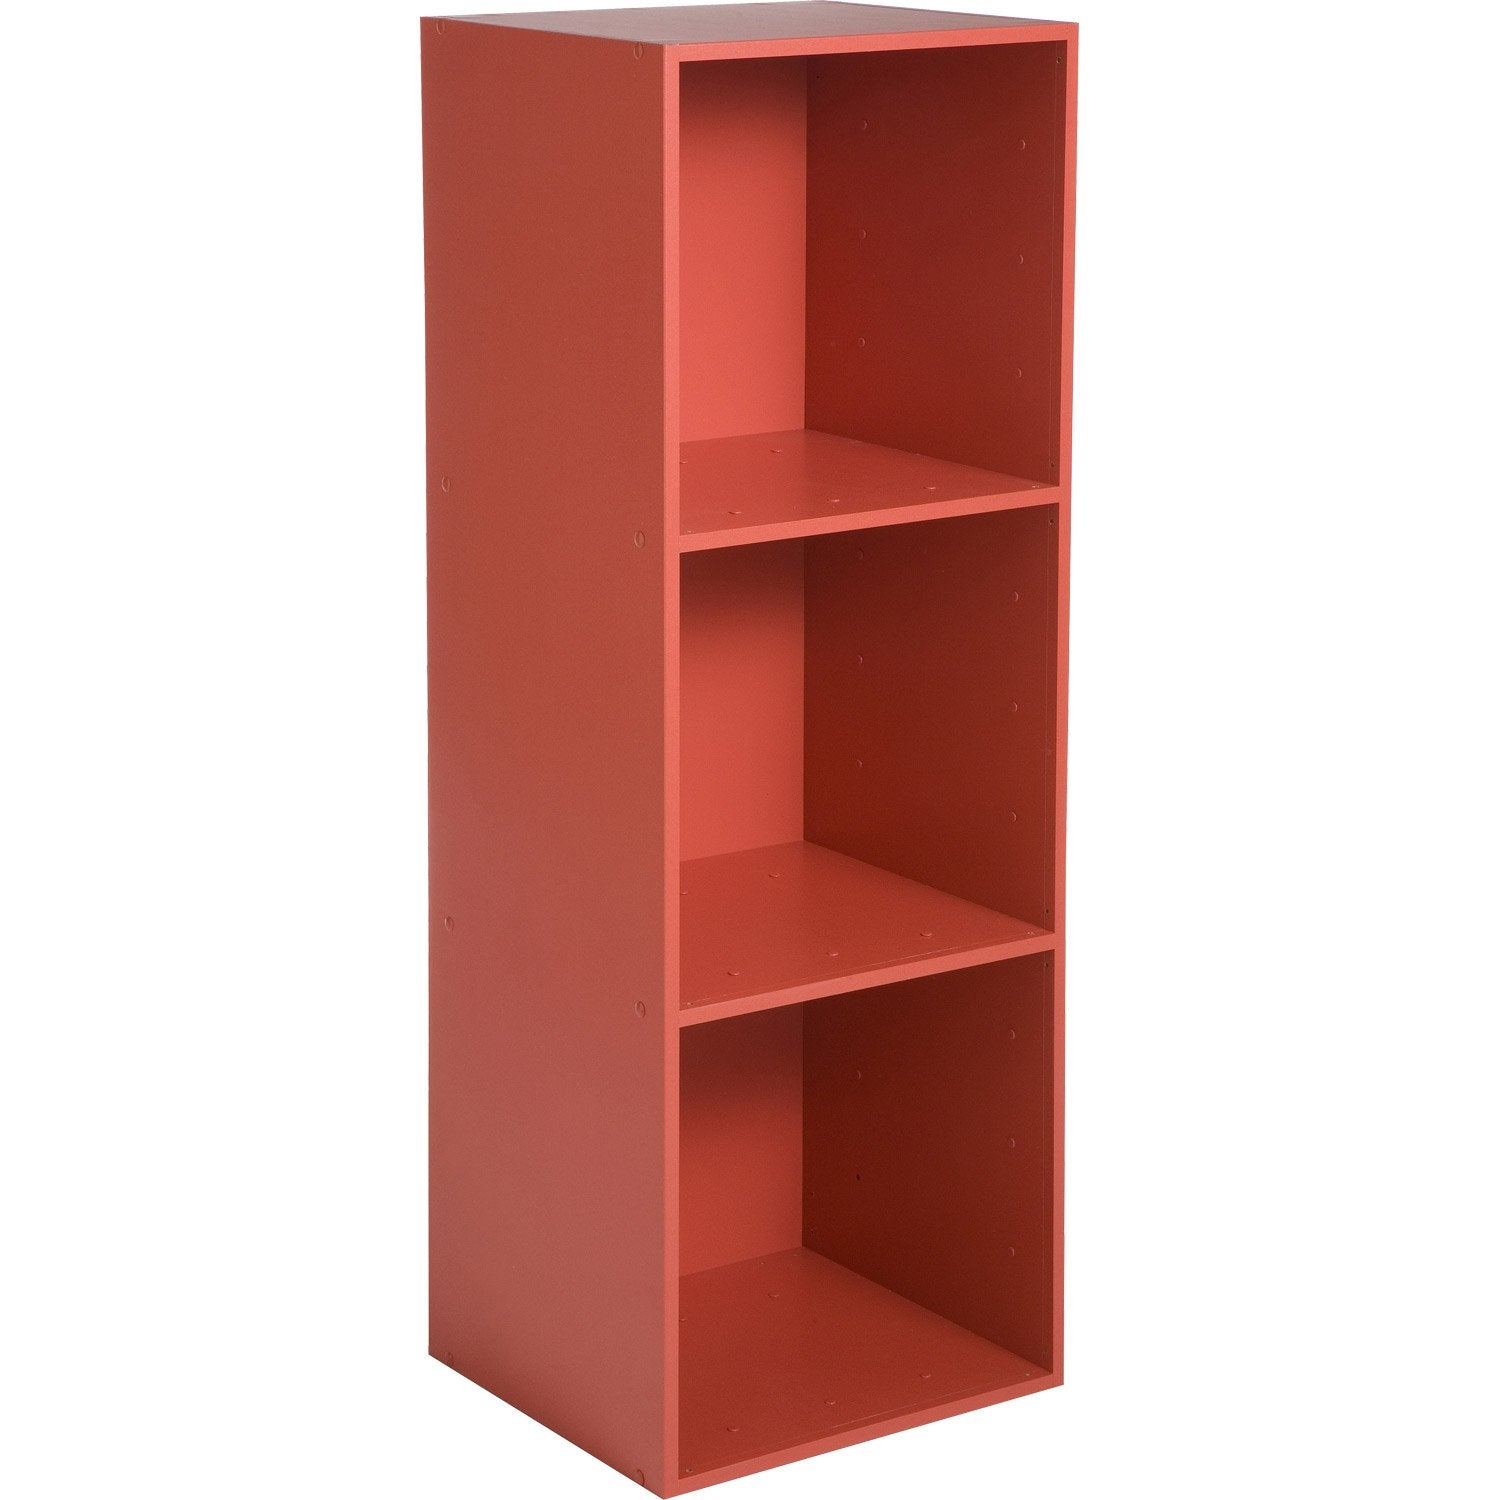 Etag re 3 cases multikaz rouge x x cm leroy merlin - Etagere leroy merlin ...